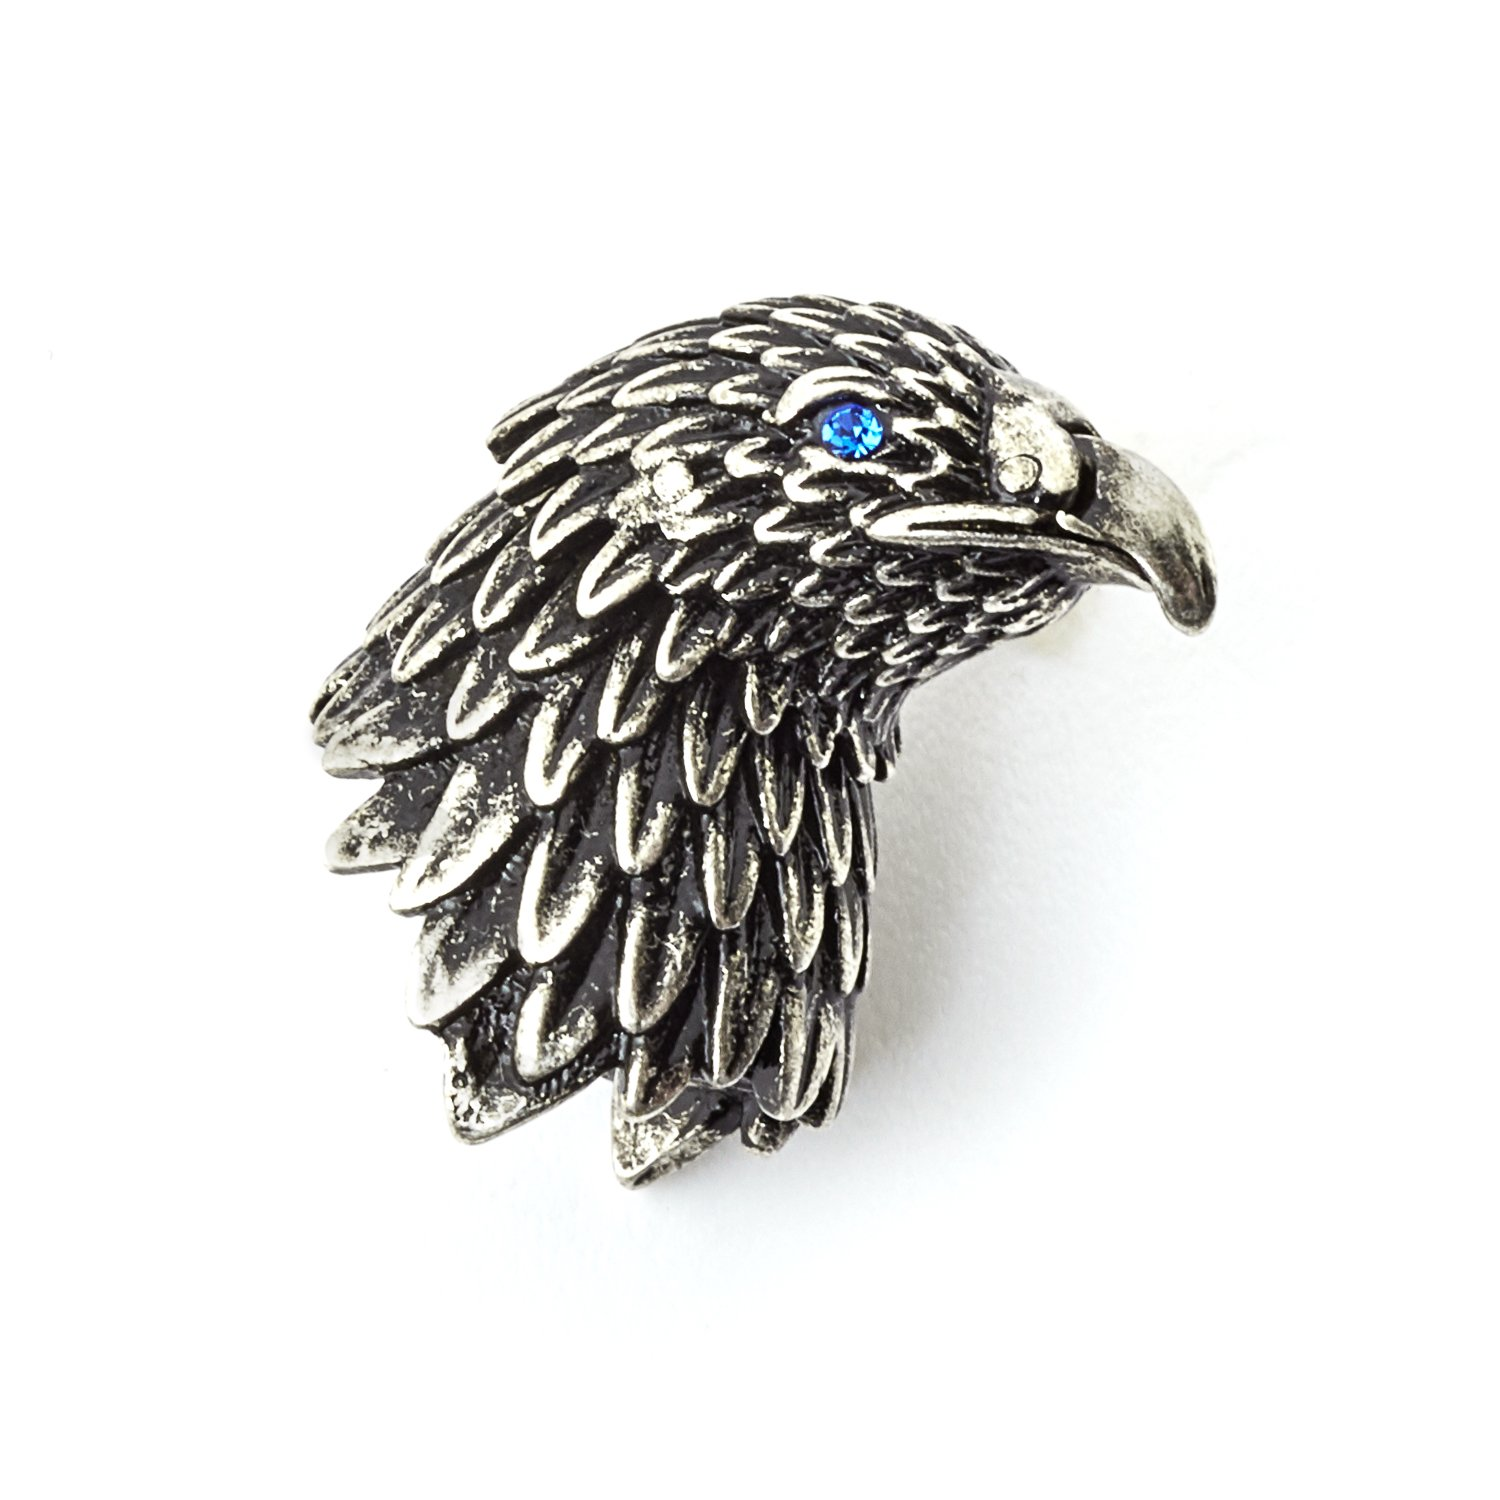 Tateossian Mens Eagle Lapel Pin Oxidized Rhodium Plating with Blue Swarovski Eyes